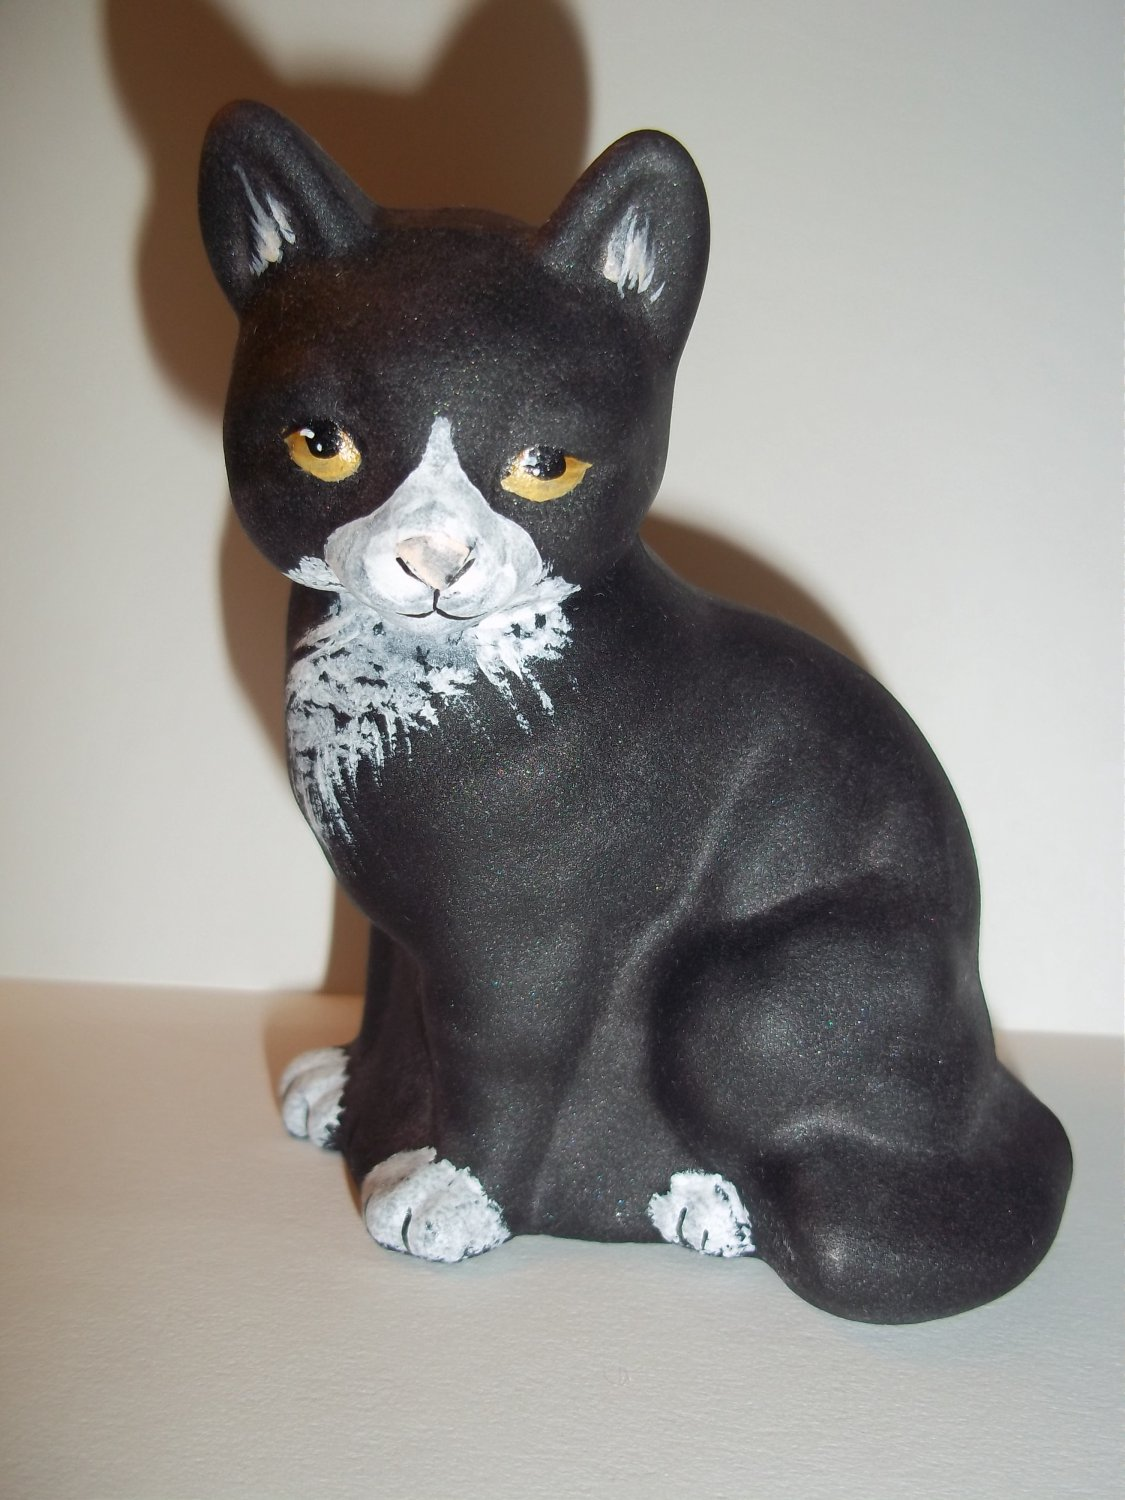 Fenton Glass Black & White Tuxedo Sitting Cat M Kibbe GSE Ltd Ed #15/39